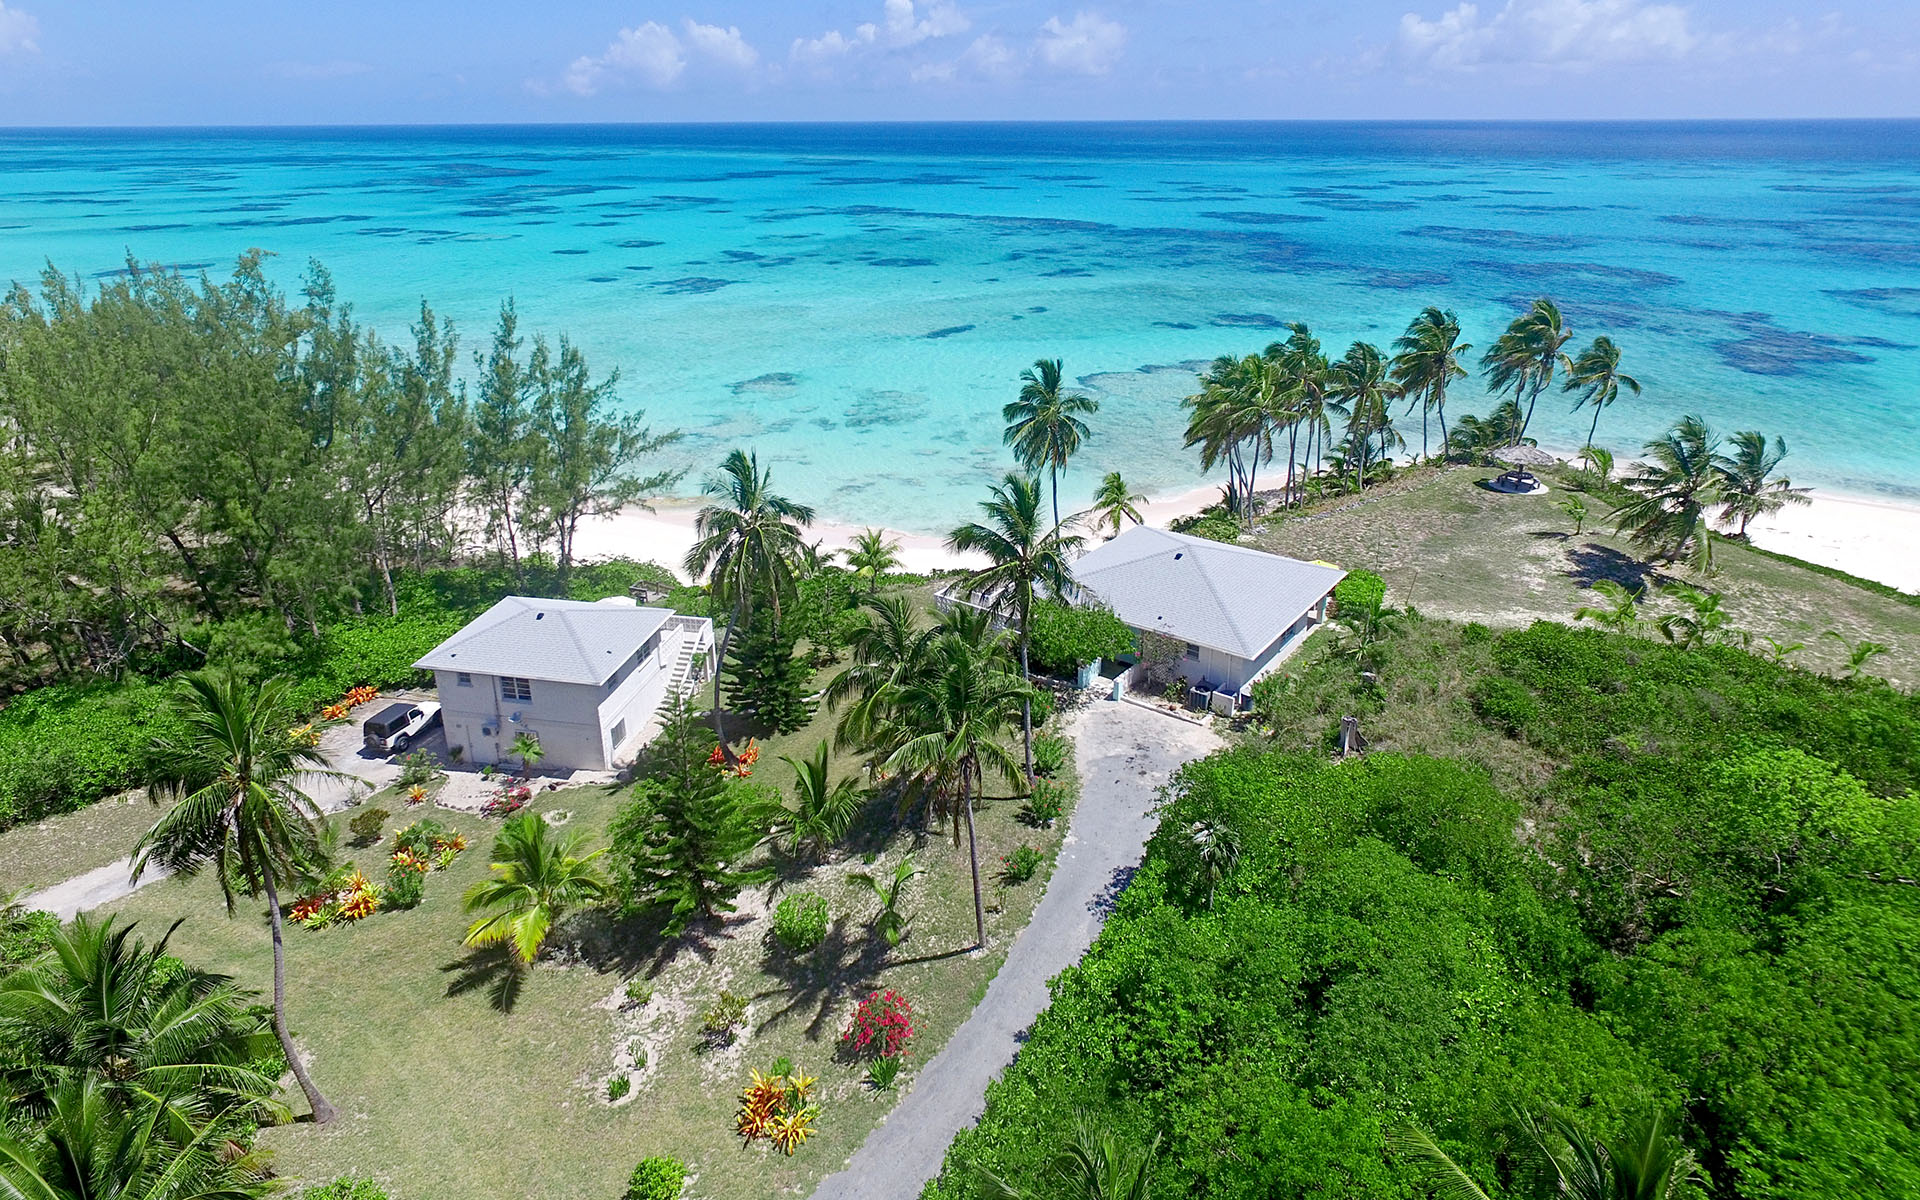 Tek Ailelik Ev için Satış at Dream Location on Banks Road, Eleuthera - MLS 30561 Eleuthera, Bahamalar